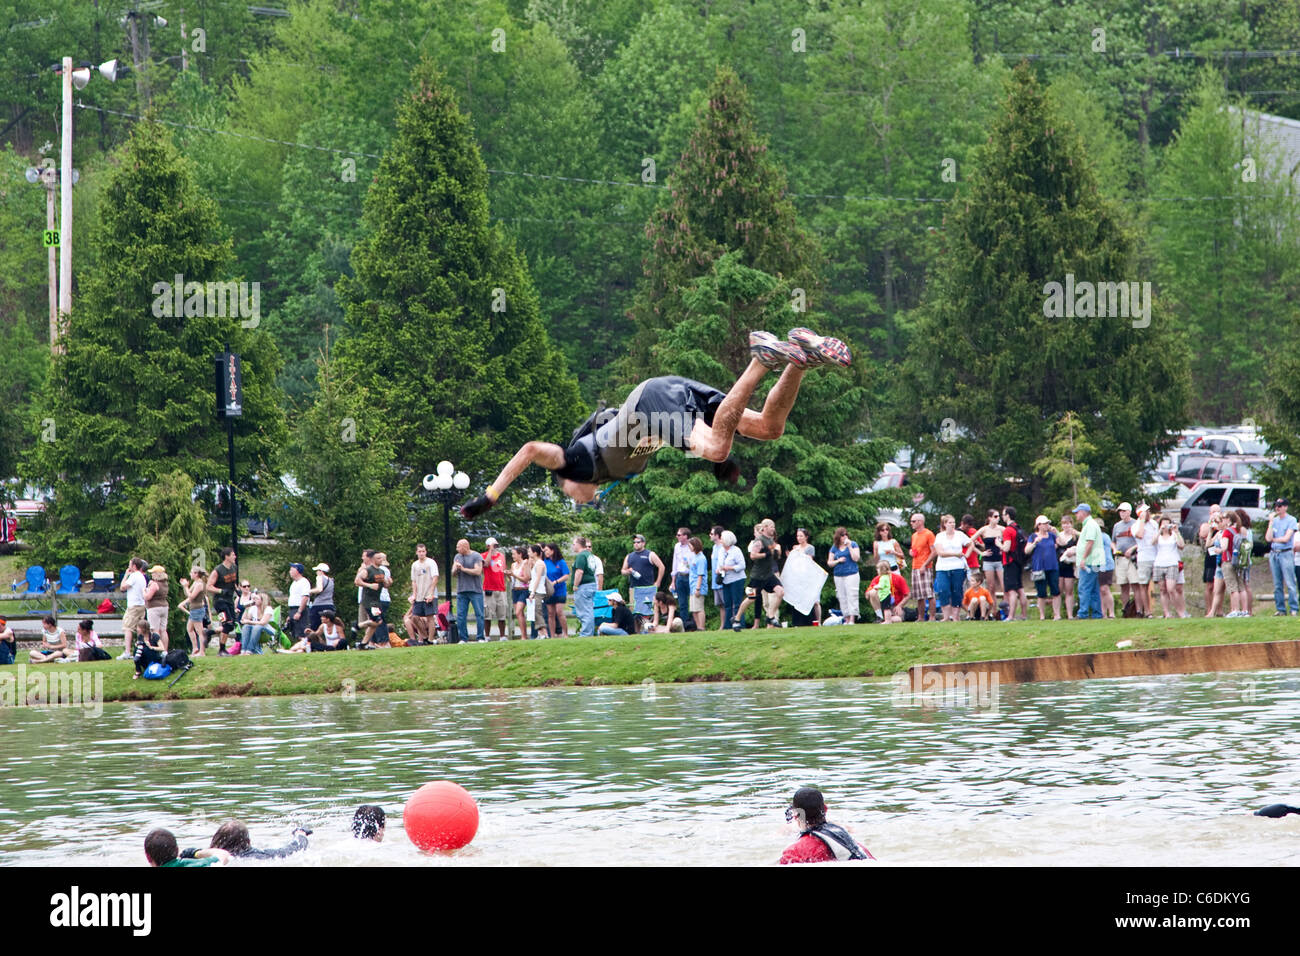 A Tough Mudder participant leaps into the water as part of the 'Walk the Plank' section of the course. Tough - Stock Image